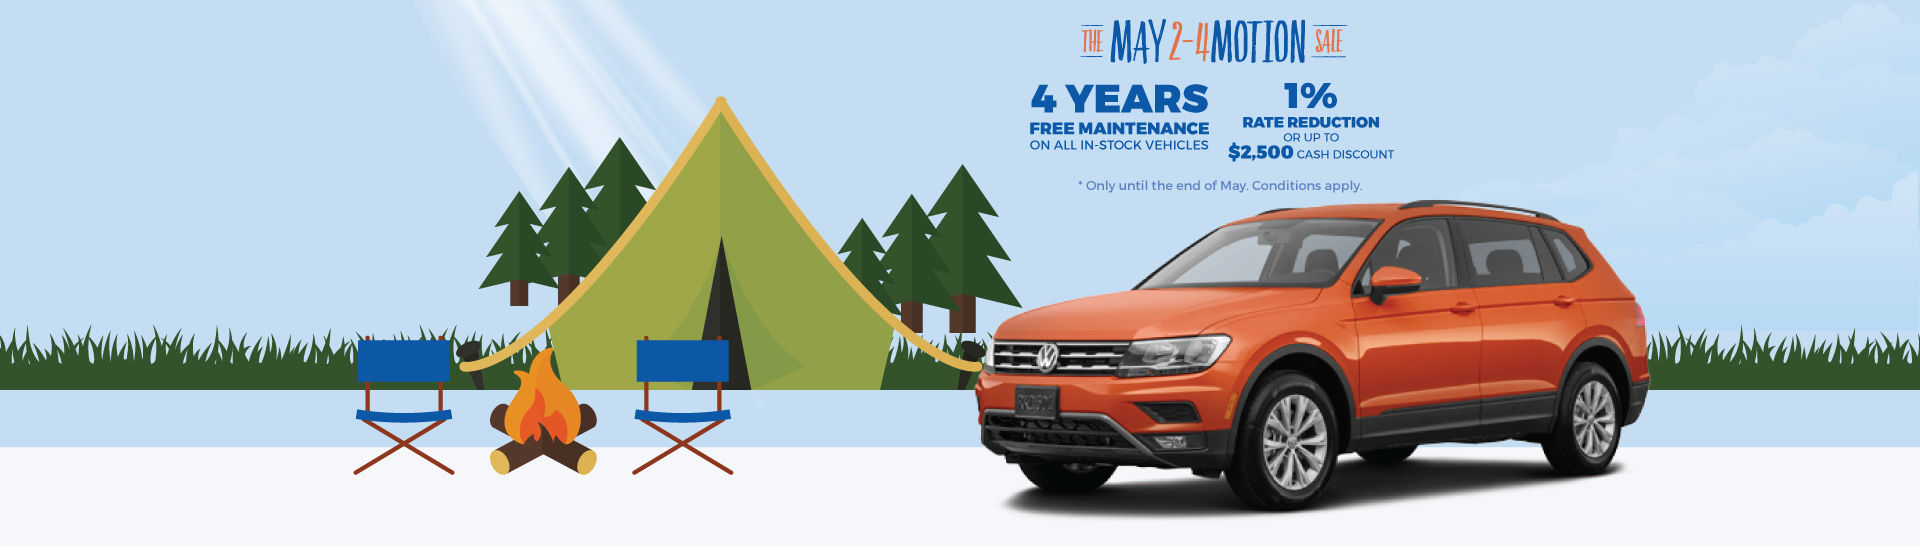 May 2-4 Motion Sale